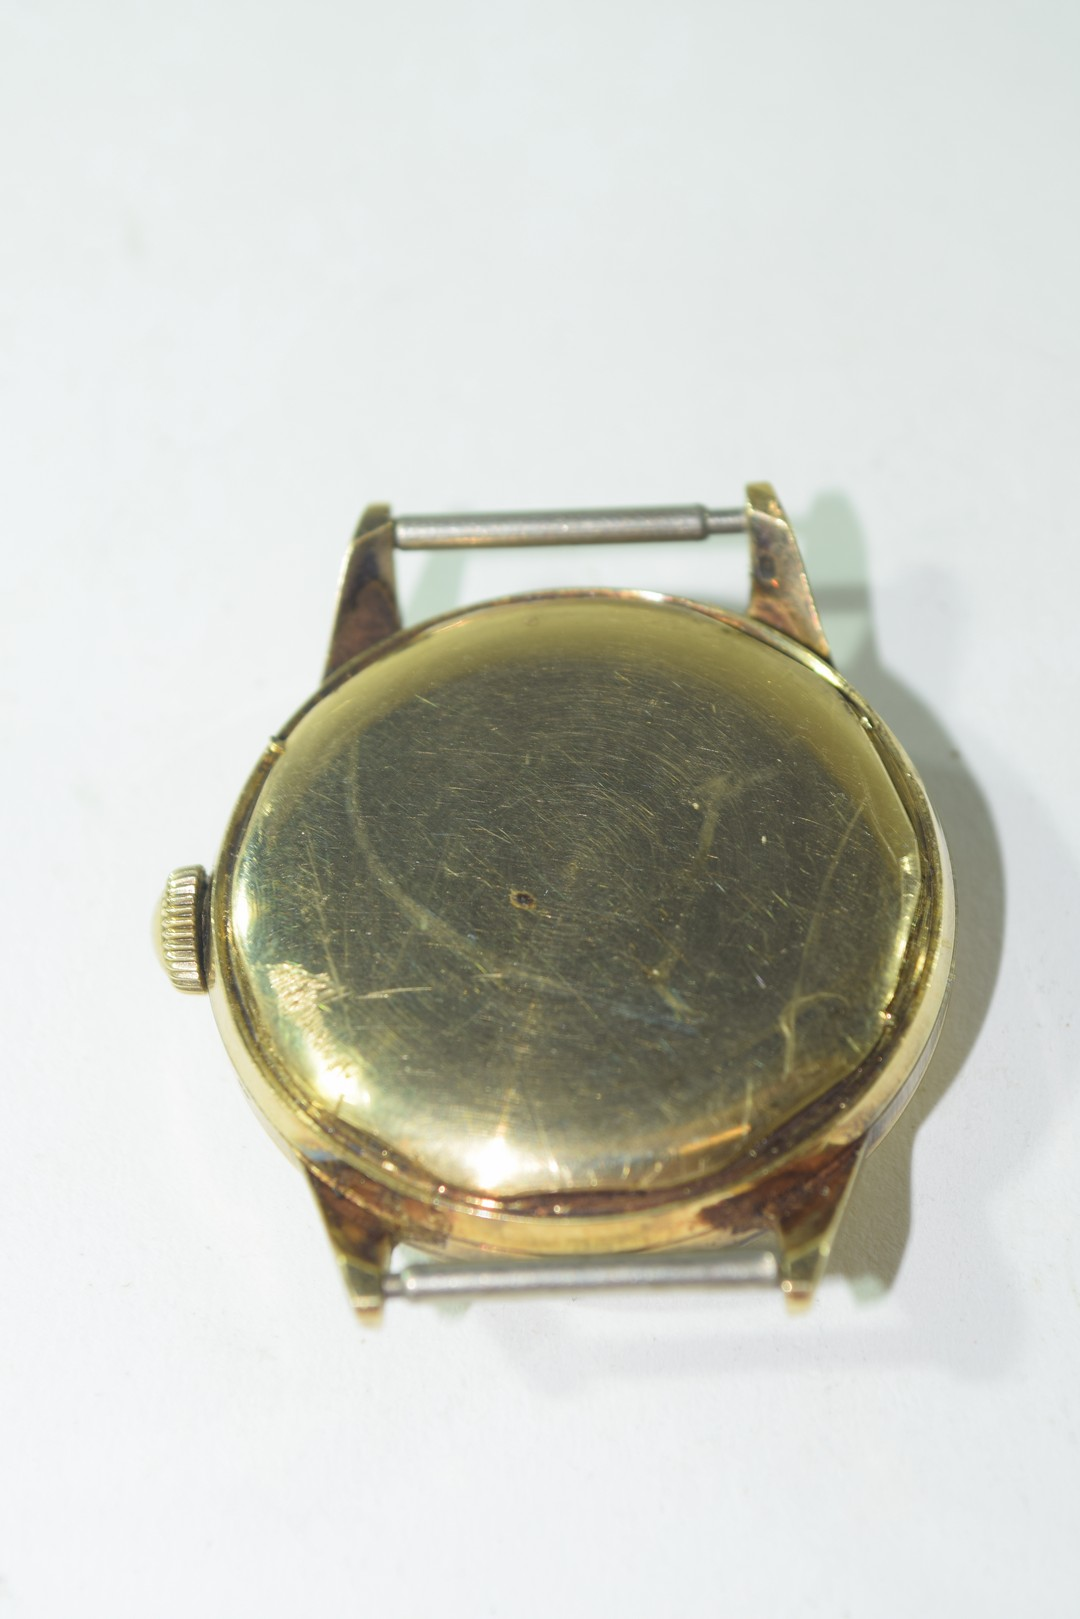 Movado gents yellow metal automatic wrist watch - Image 3 of 4